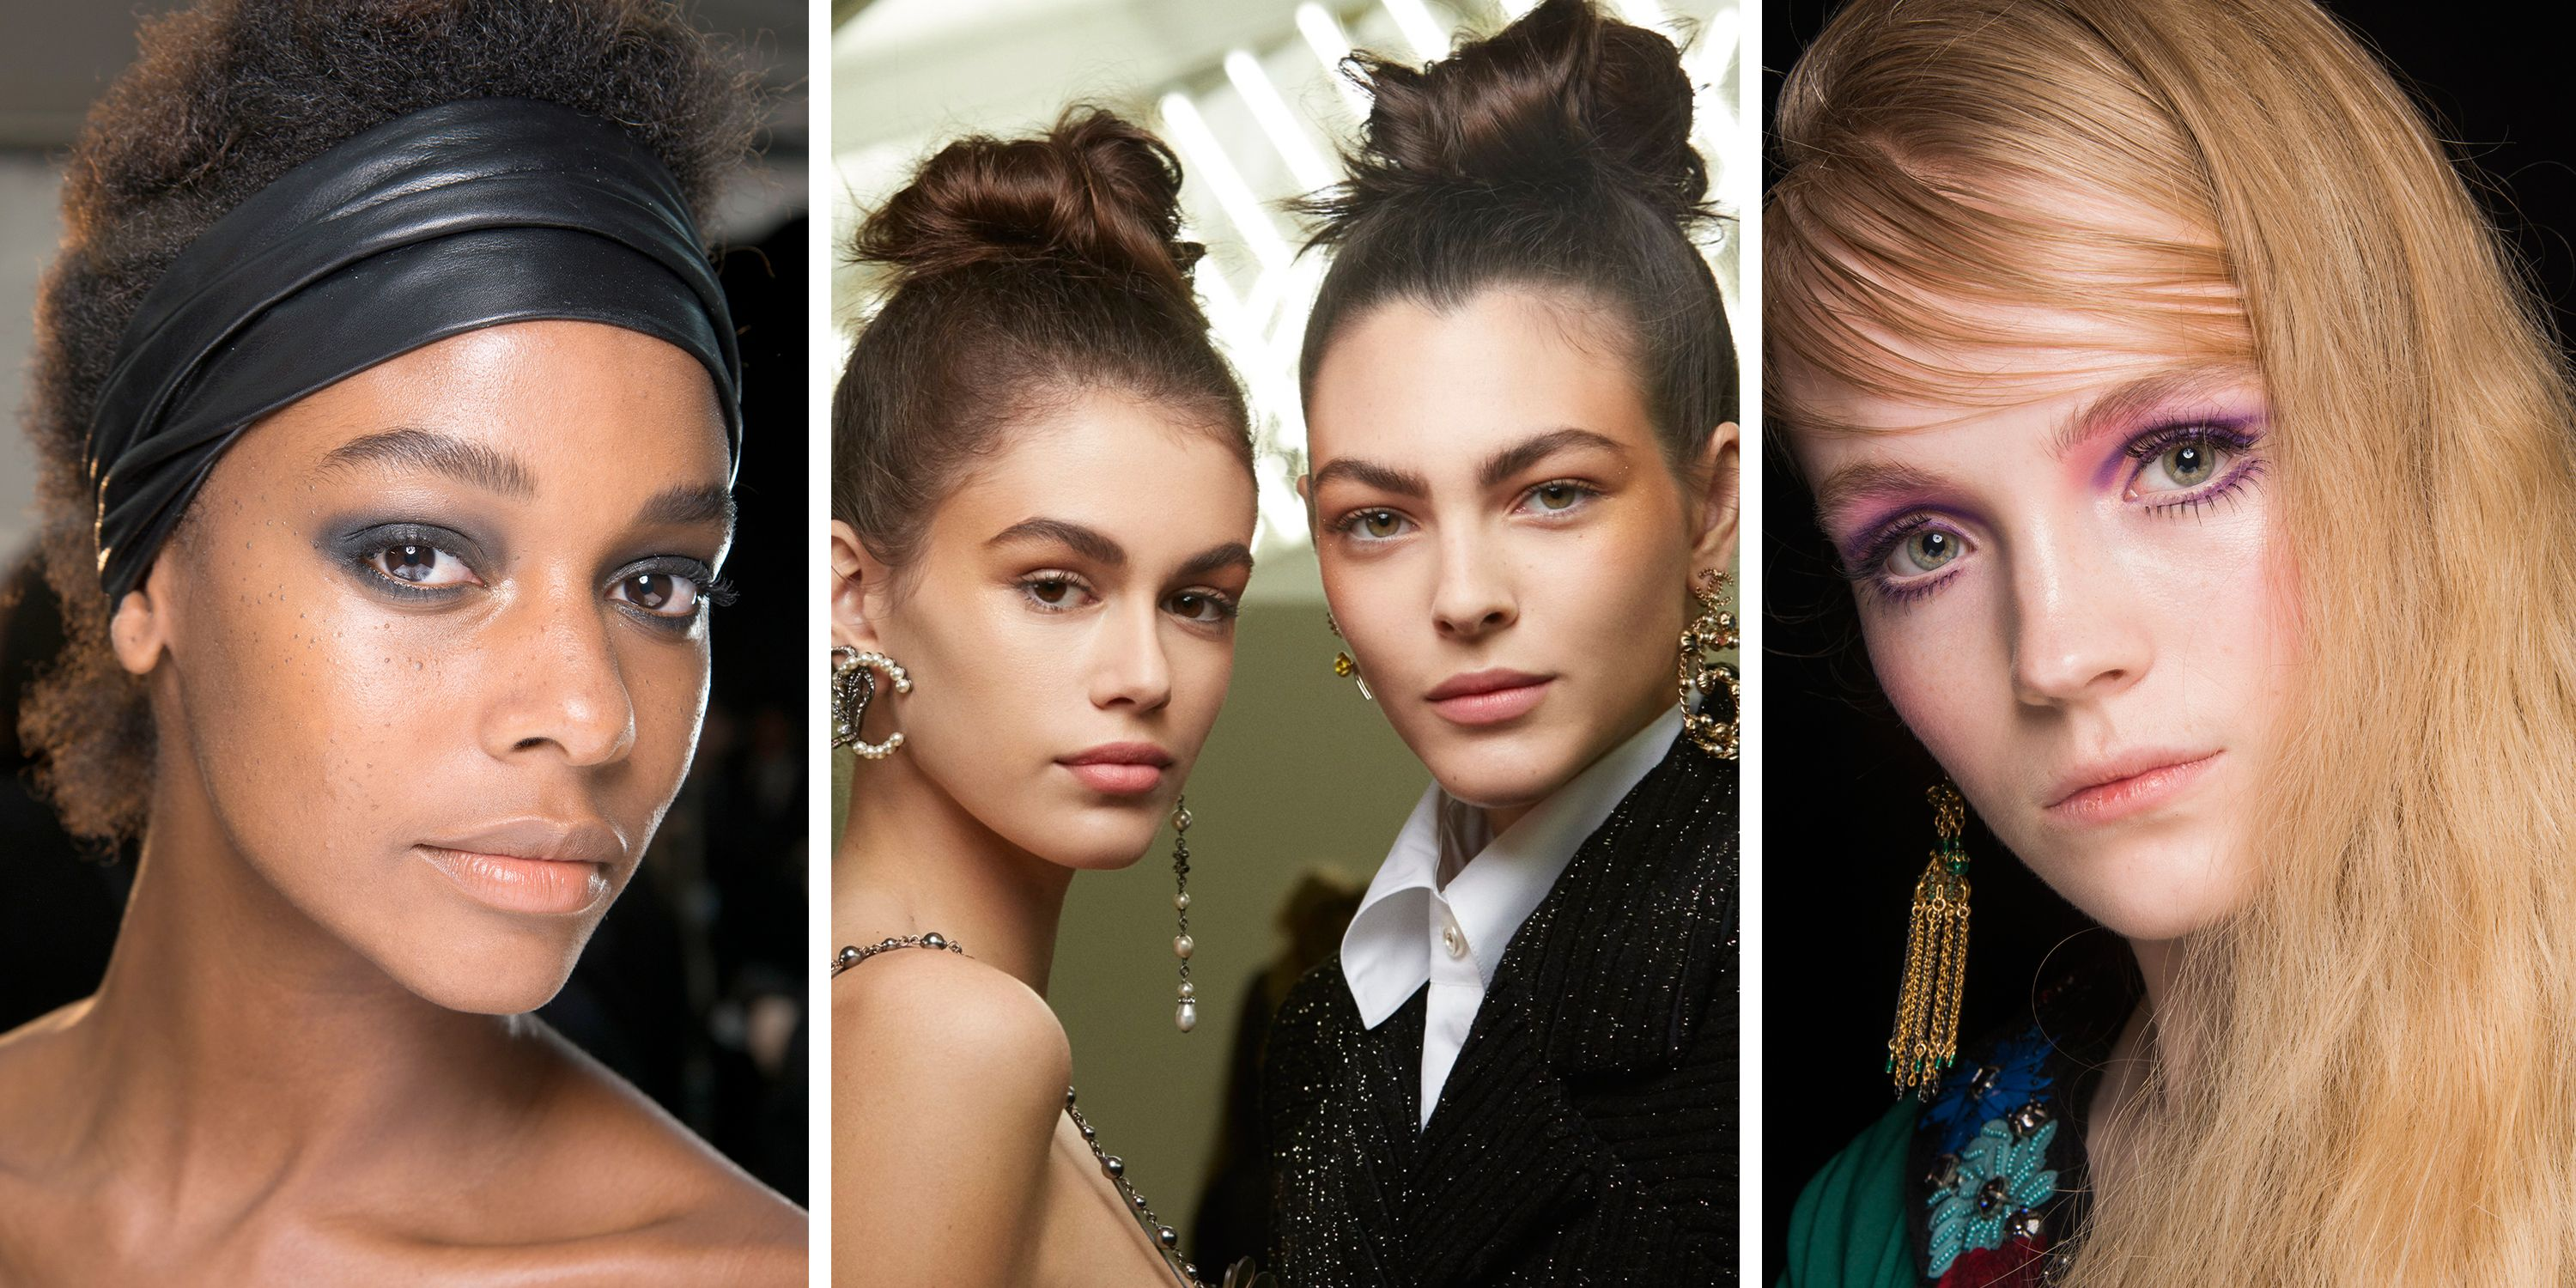 Autumn Winter 2018 Hair and Makeup Trends